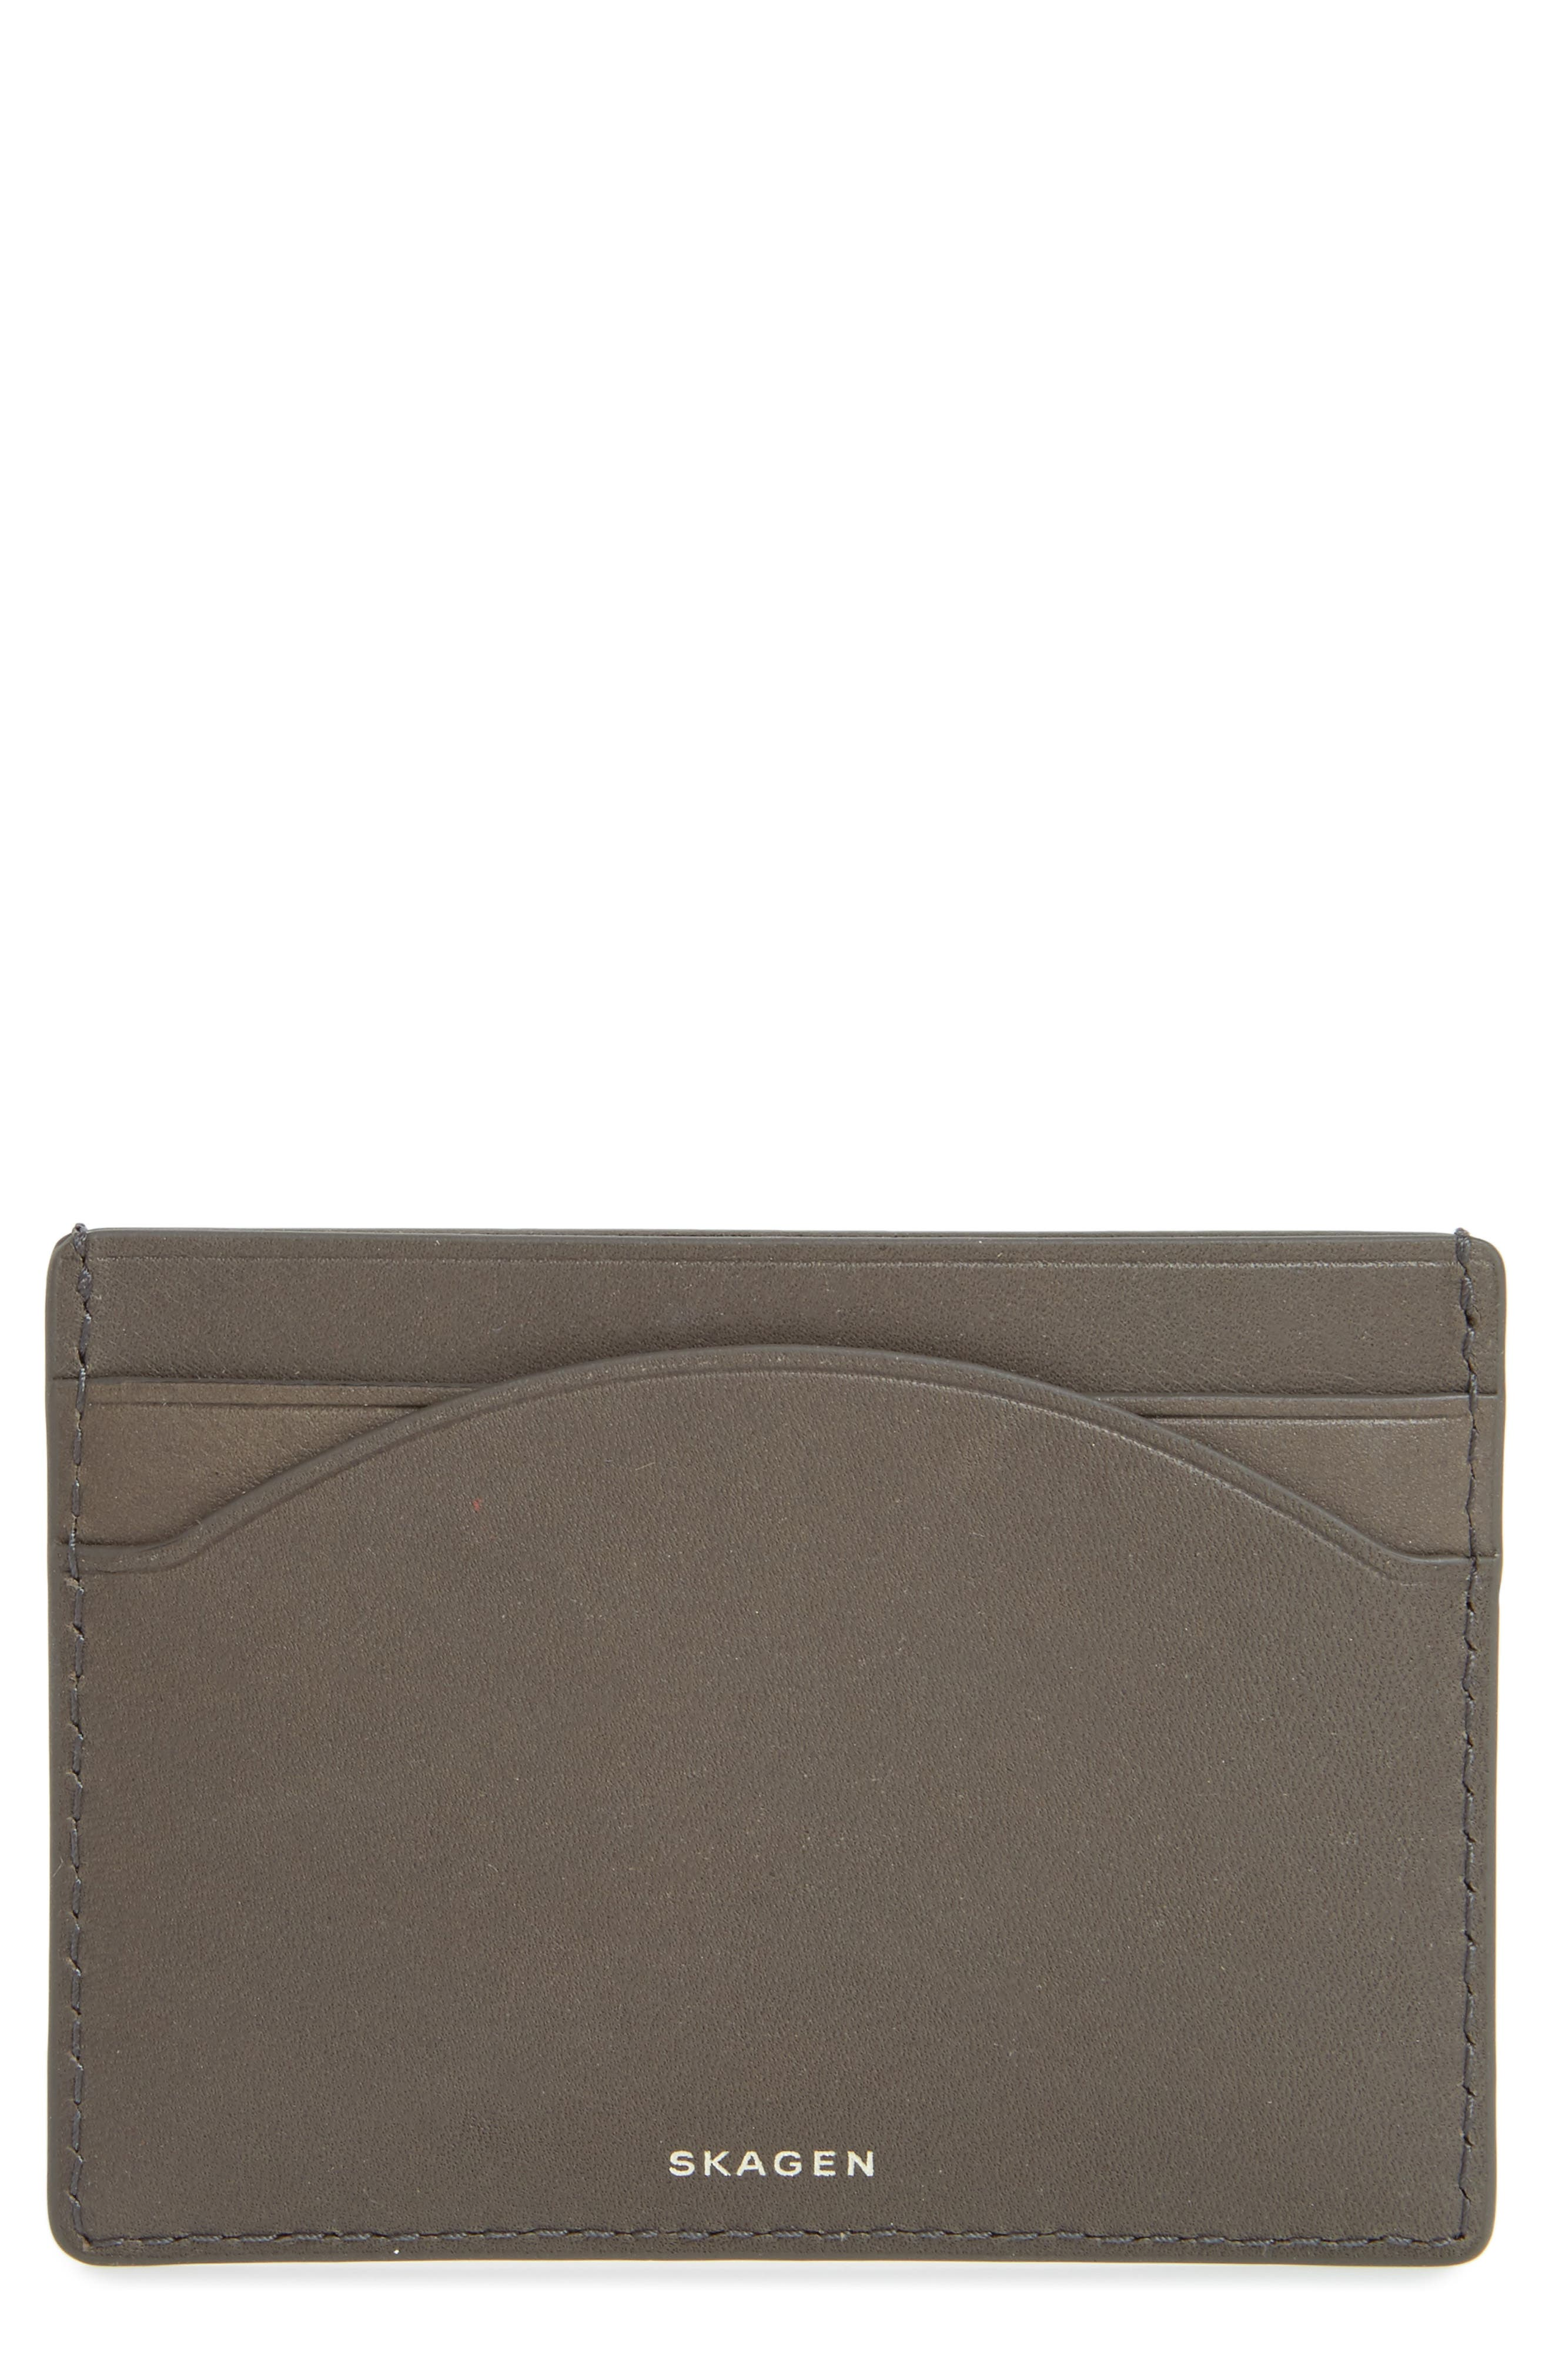 Leather Card Case,                             Main thumbnail 1, color,                             020